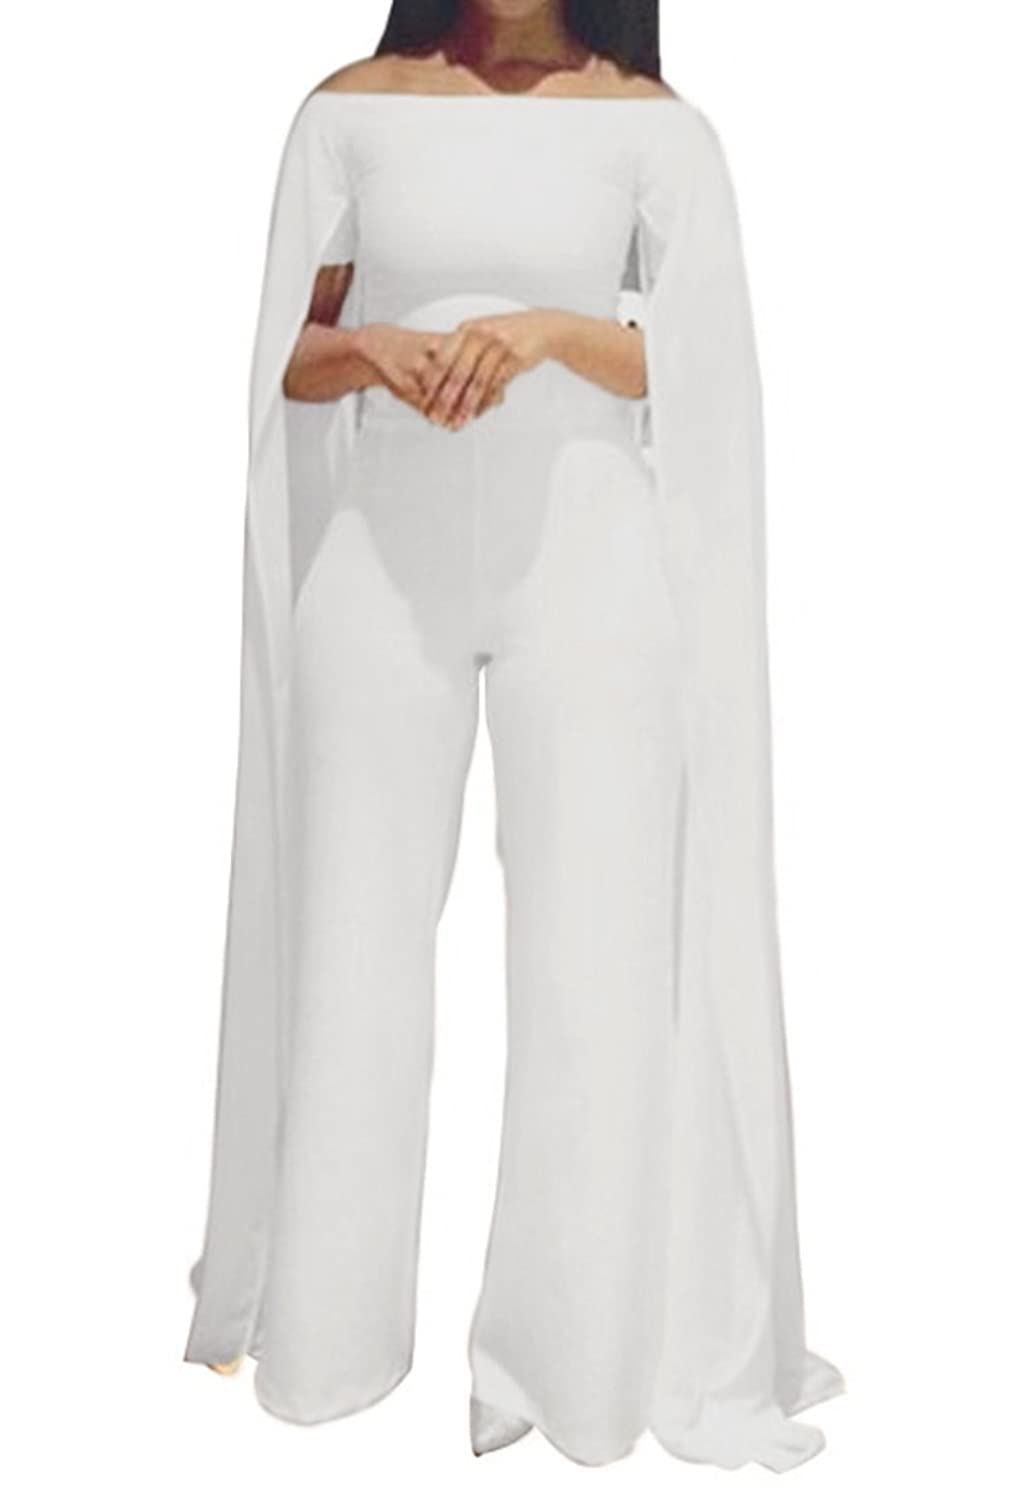 Sexy white pant suit